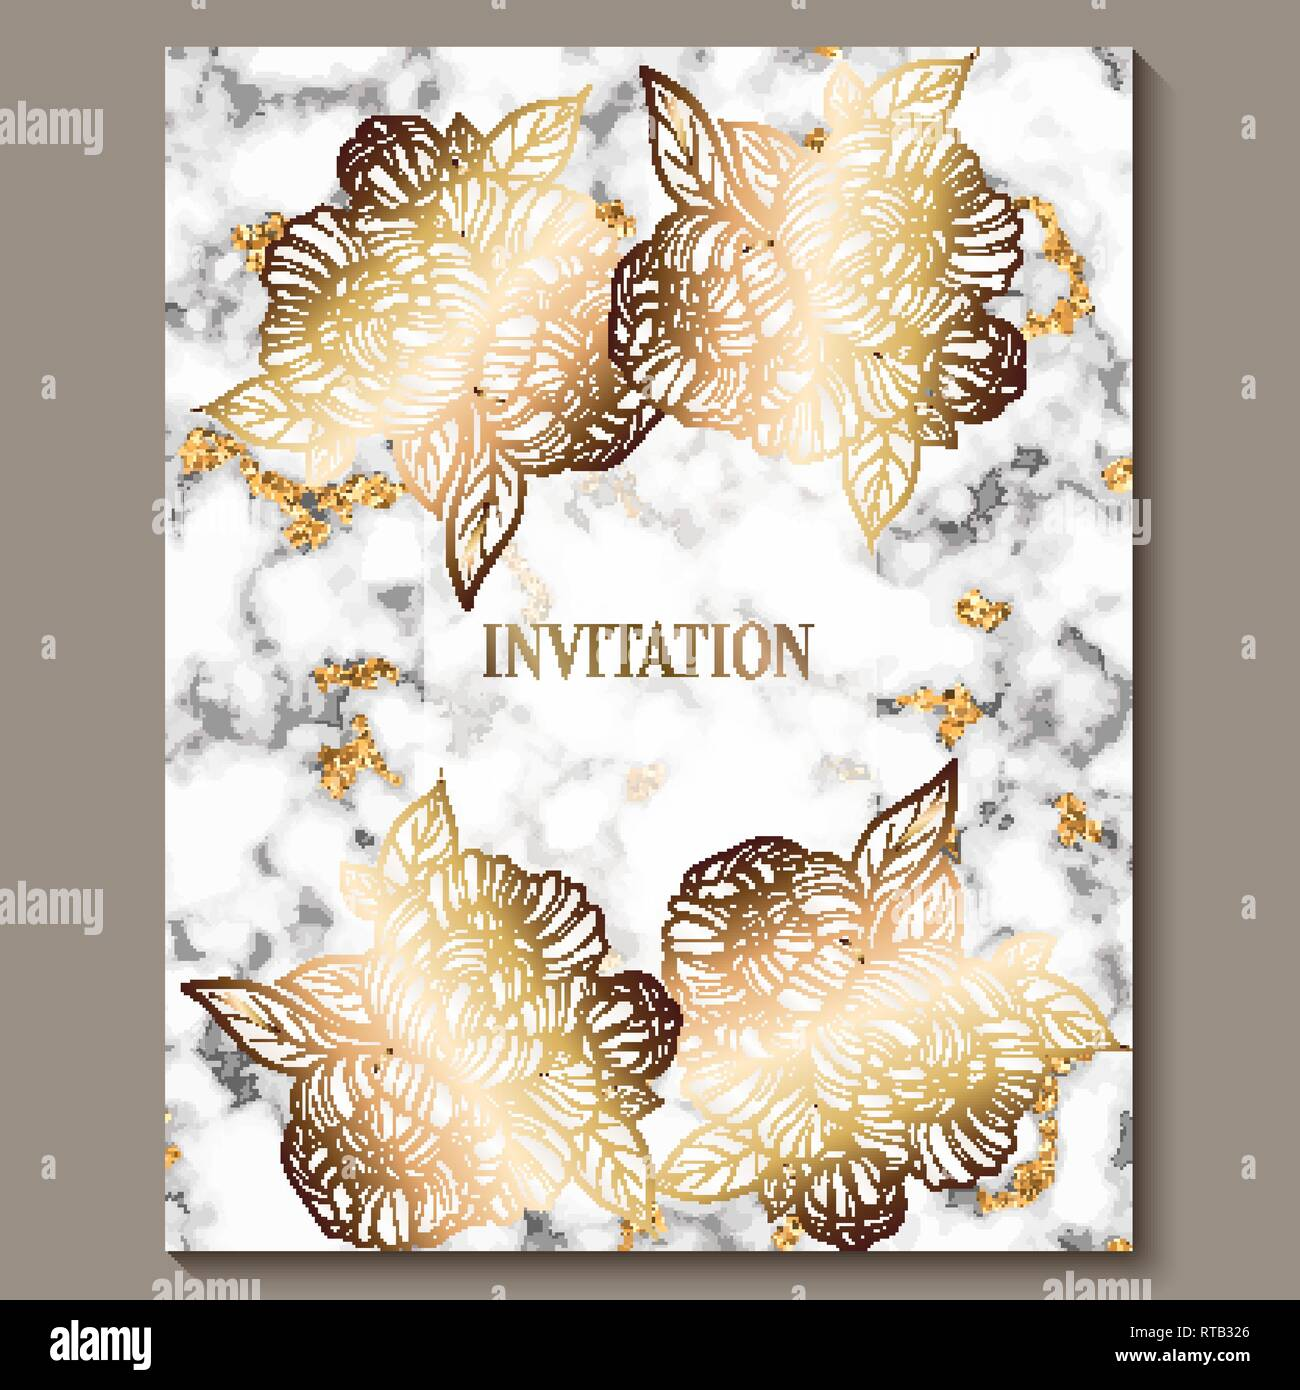 https www alamy com luxury and elegant wedding invitation cards with marble texture and gold glitter background modern wedding invitation decorated with peony flowers image238730414 html